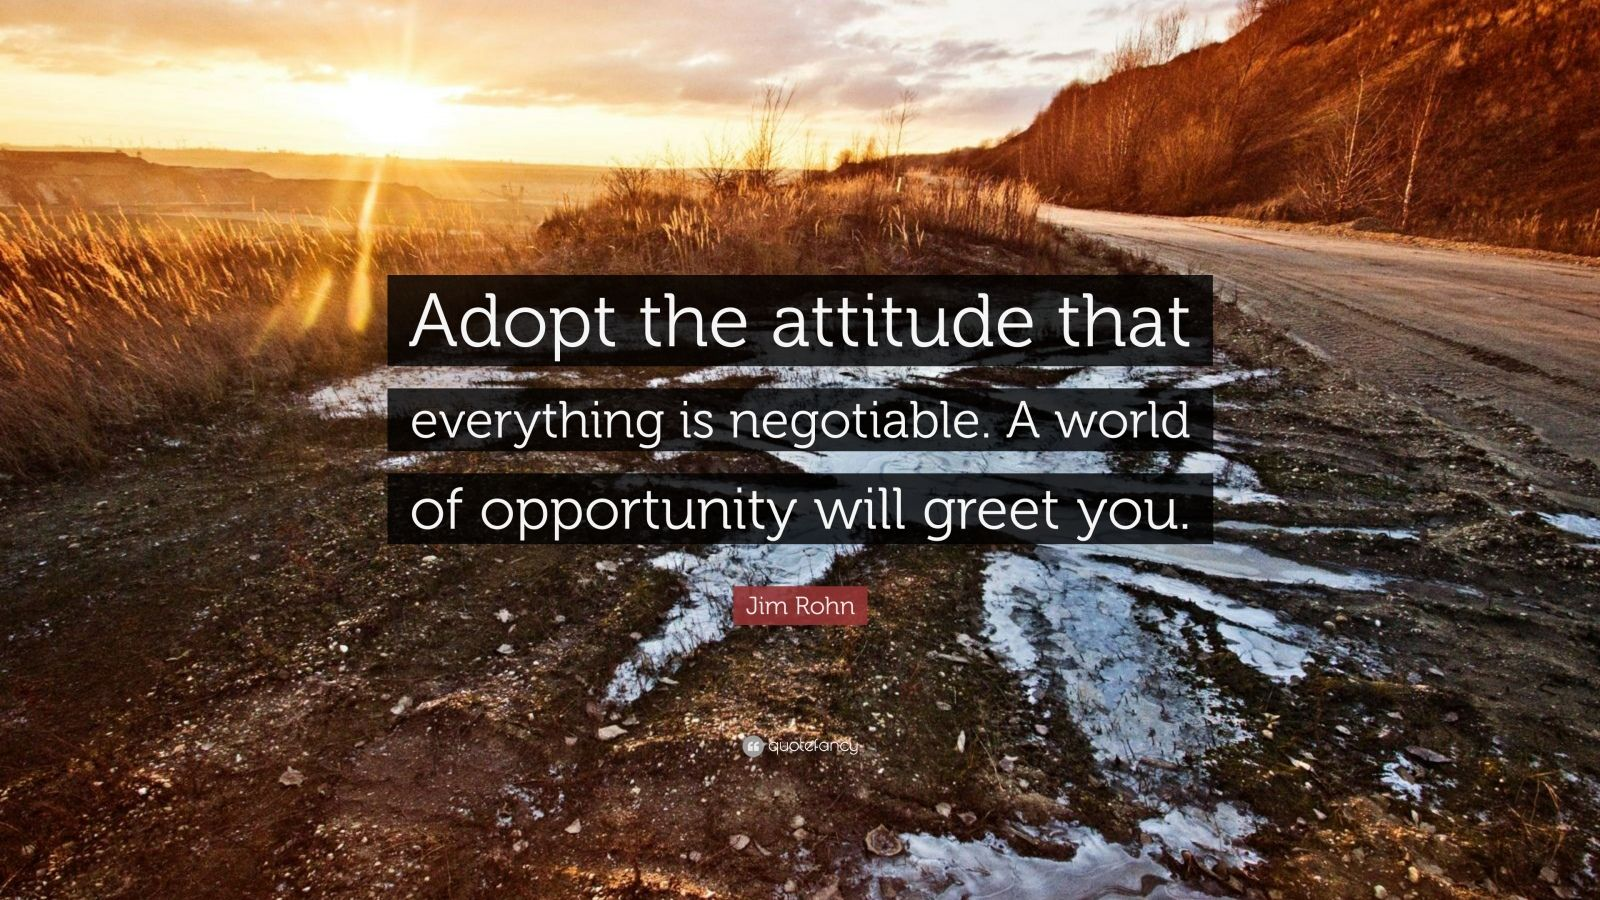 """Jim Rohn Quote: """"Adopt the attitude that everything is negotiable. A world of opportunity will greet you."""""""